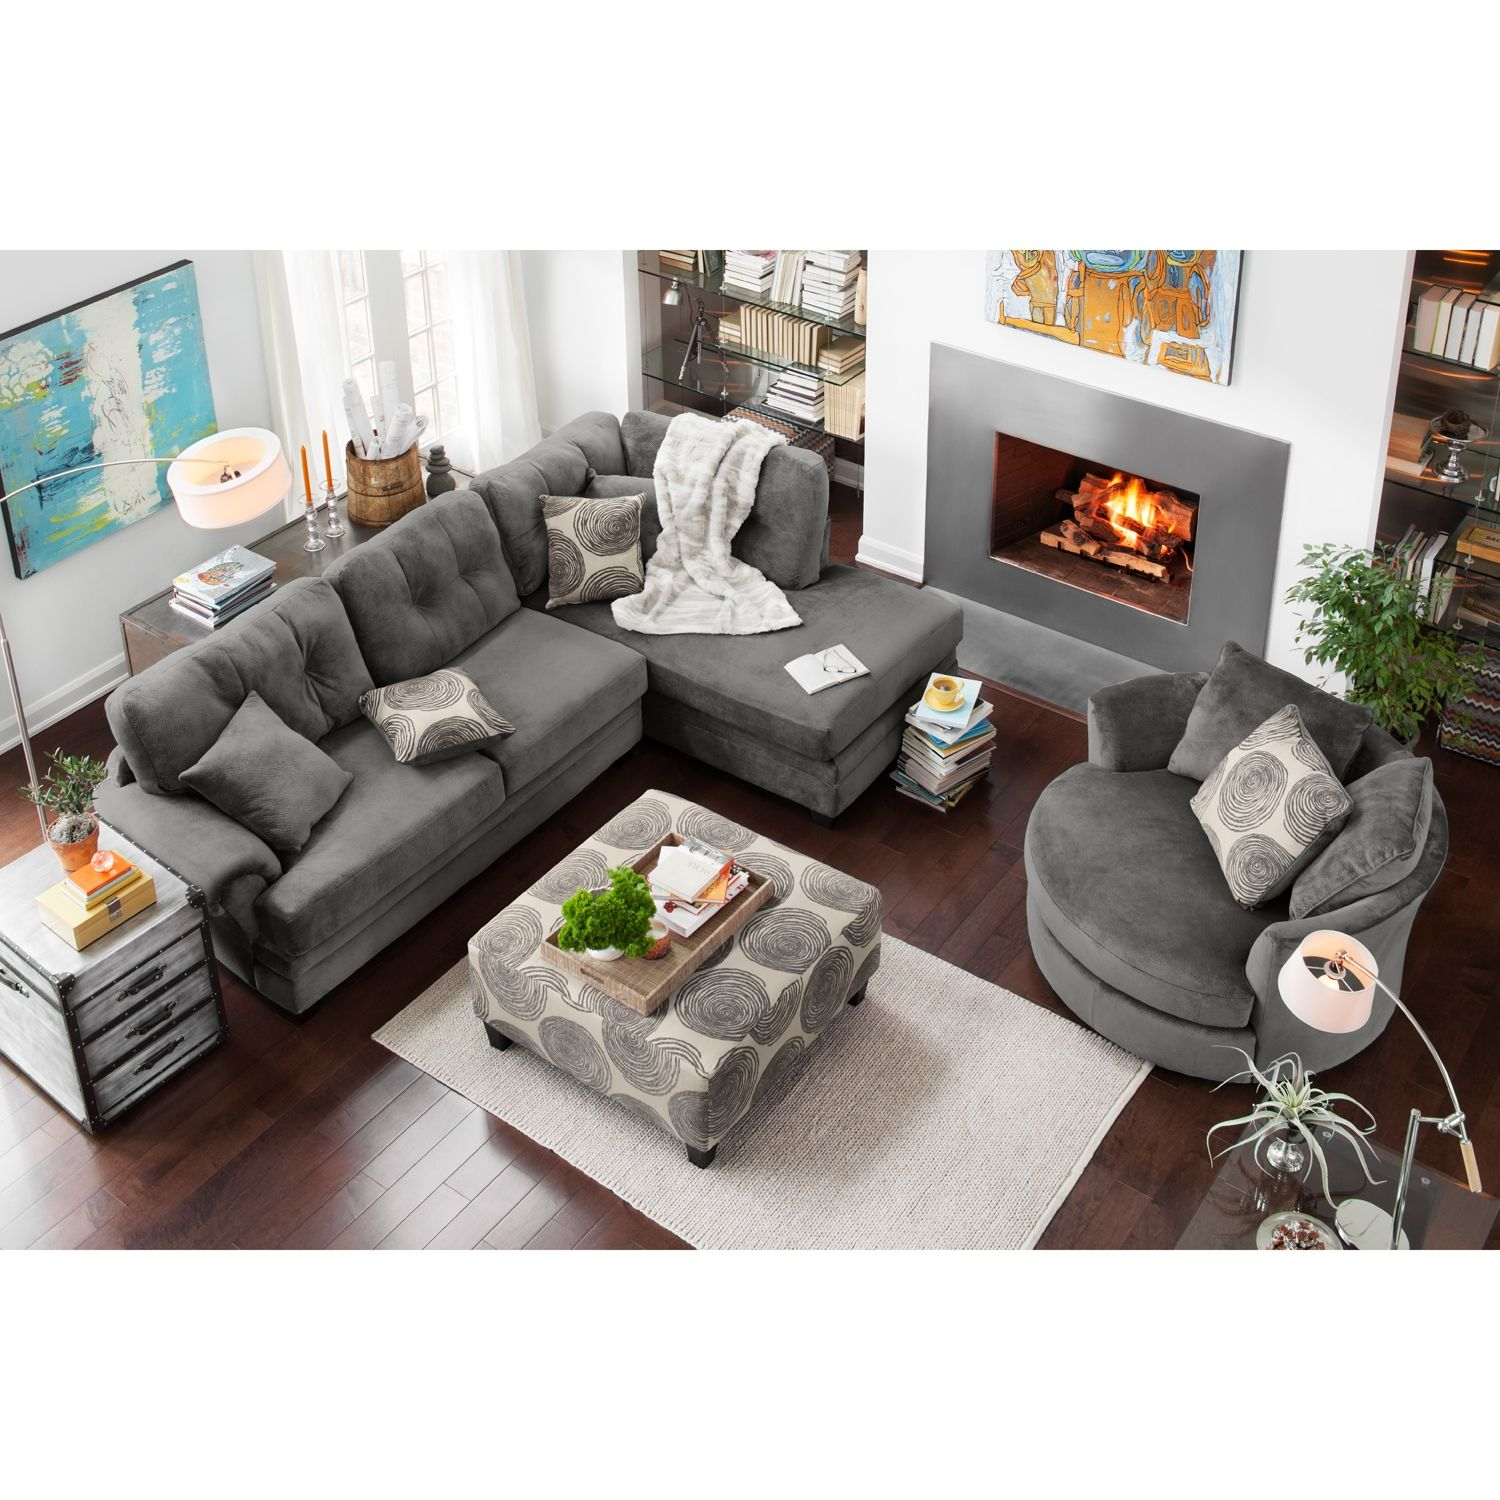 Home City Furniture Set Decoration Stunning Cordelle 2Piece Rightfacing Chaise Sectional  Gray  Value City . Design Ideas